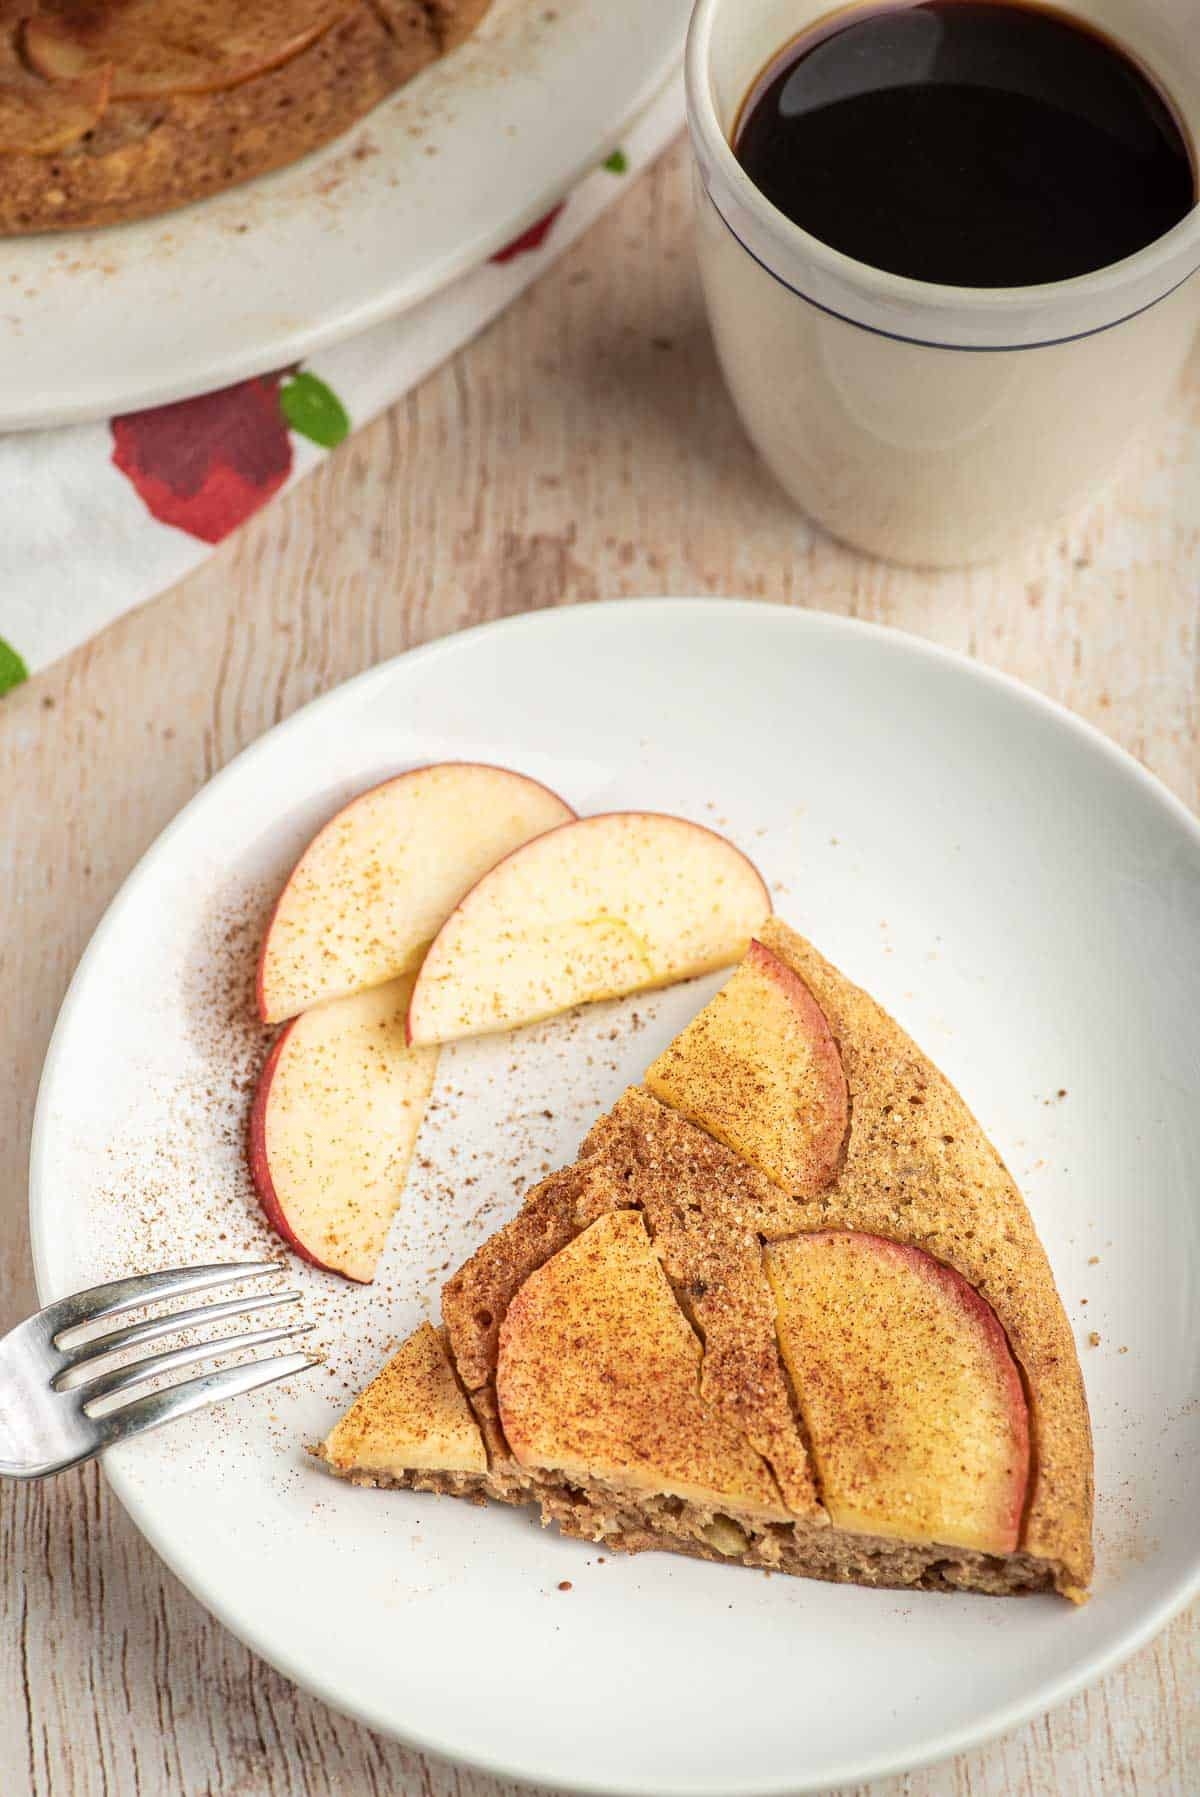 Slice of apple pancake on a white plate with apple slices. Coffee in background.